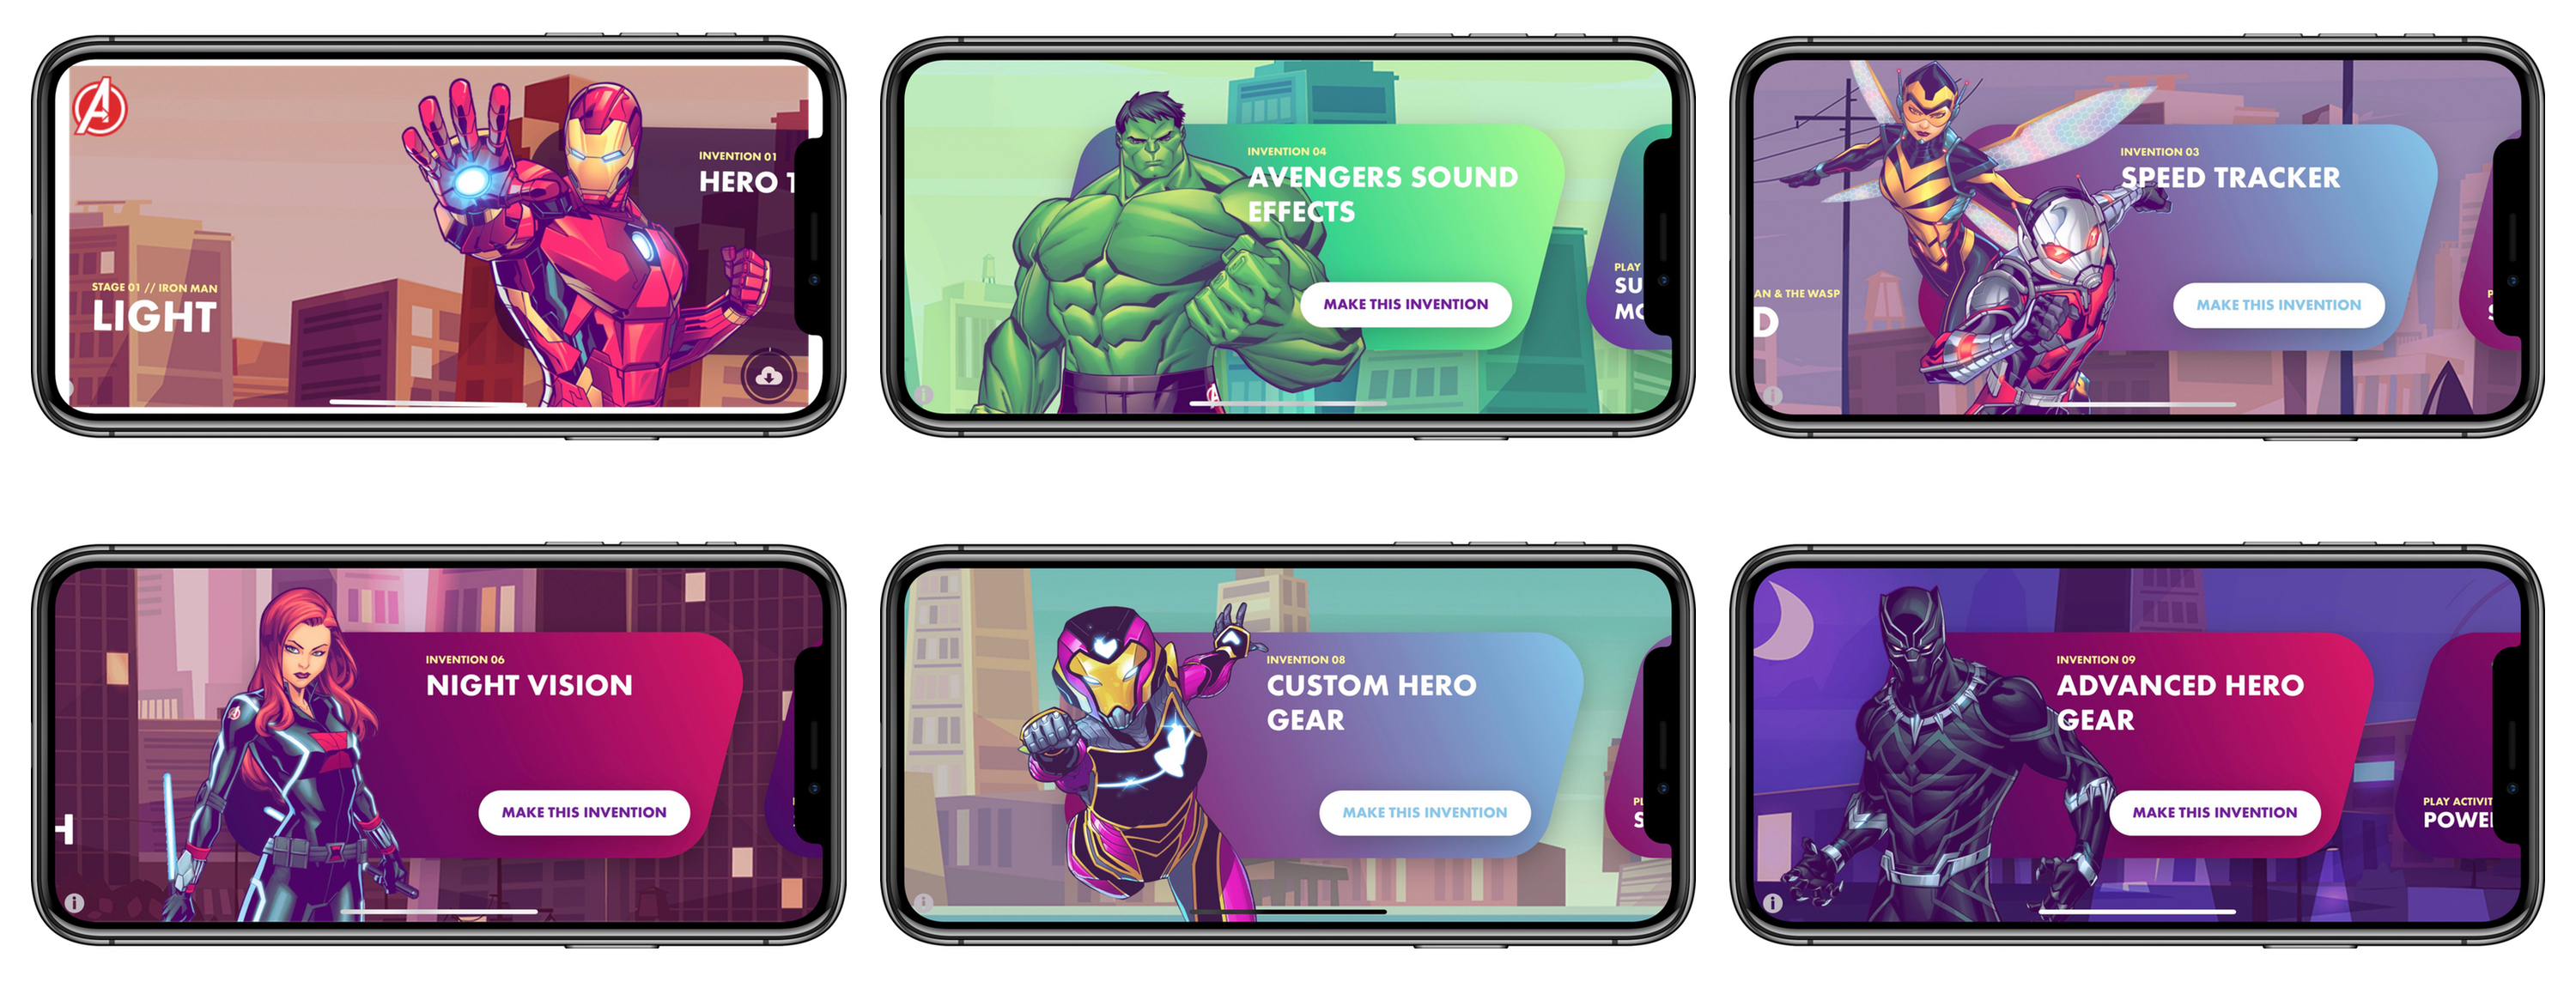 Hands-on w/ littleBits' Avengers Hero Inventor Kit: learning to code